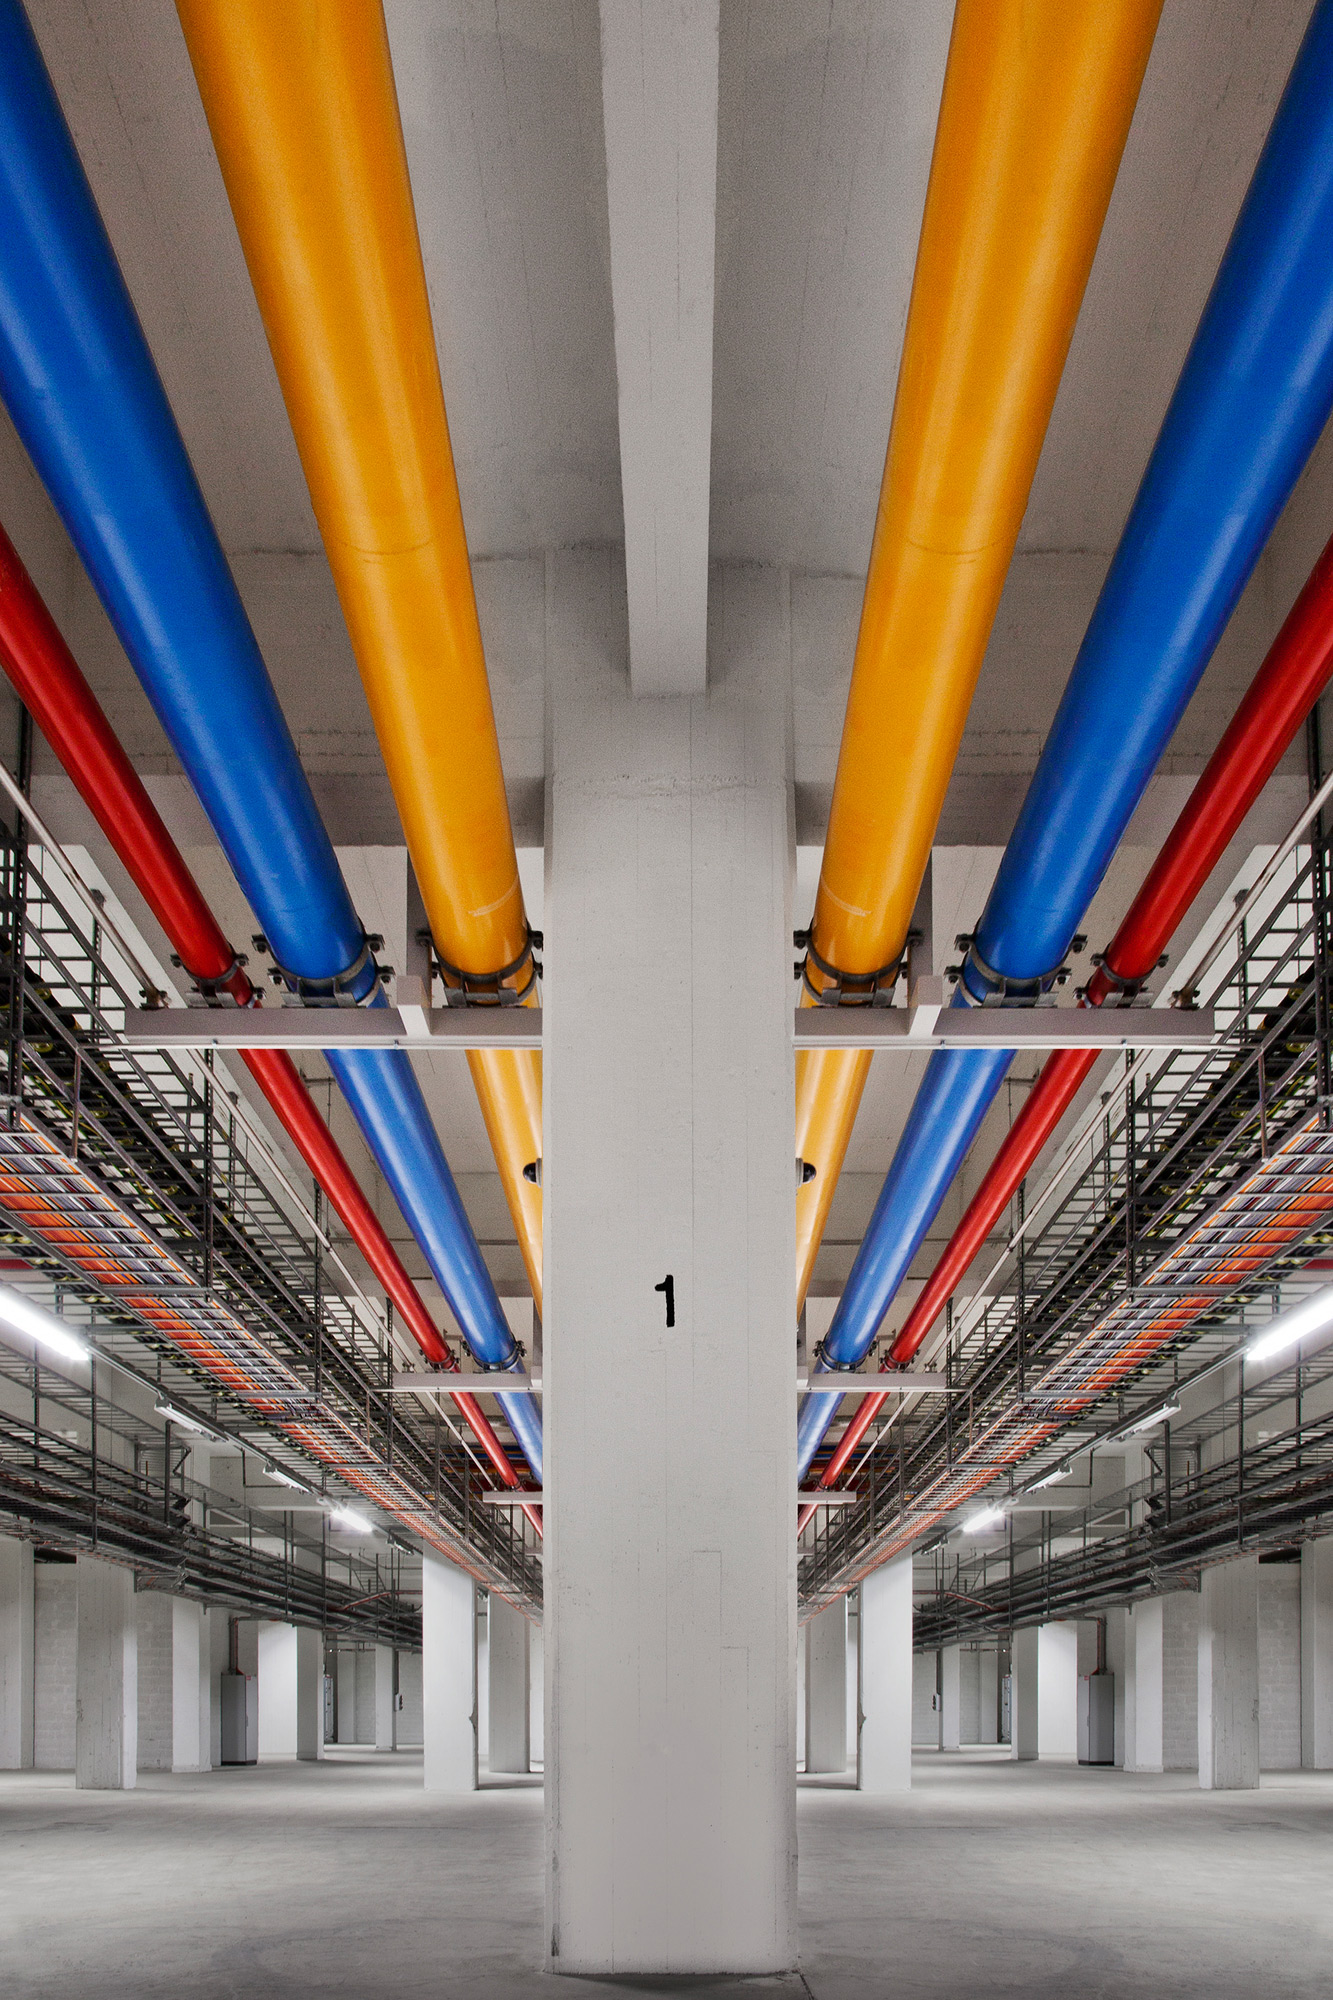 http://www.google.com/about/datacenters/gallery/images/_2000/LPP_021.jpg